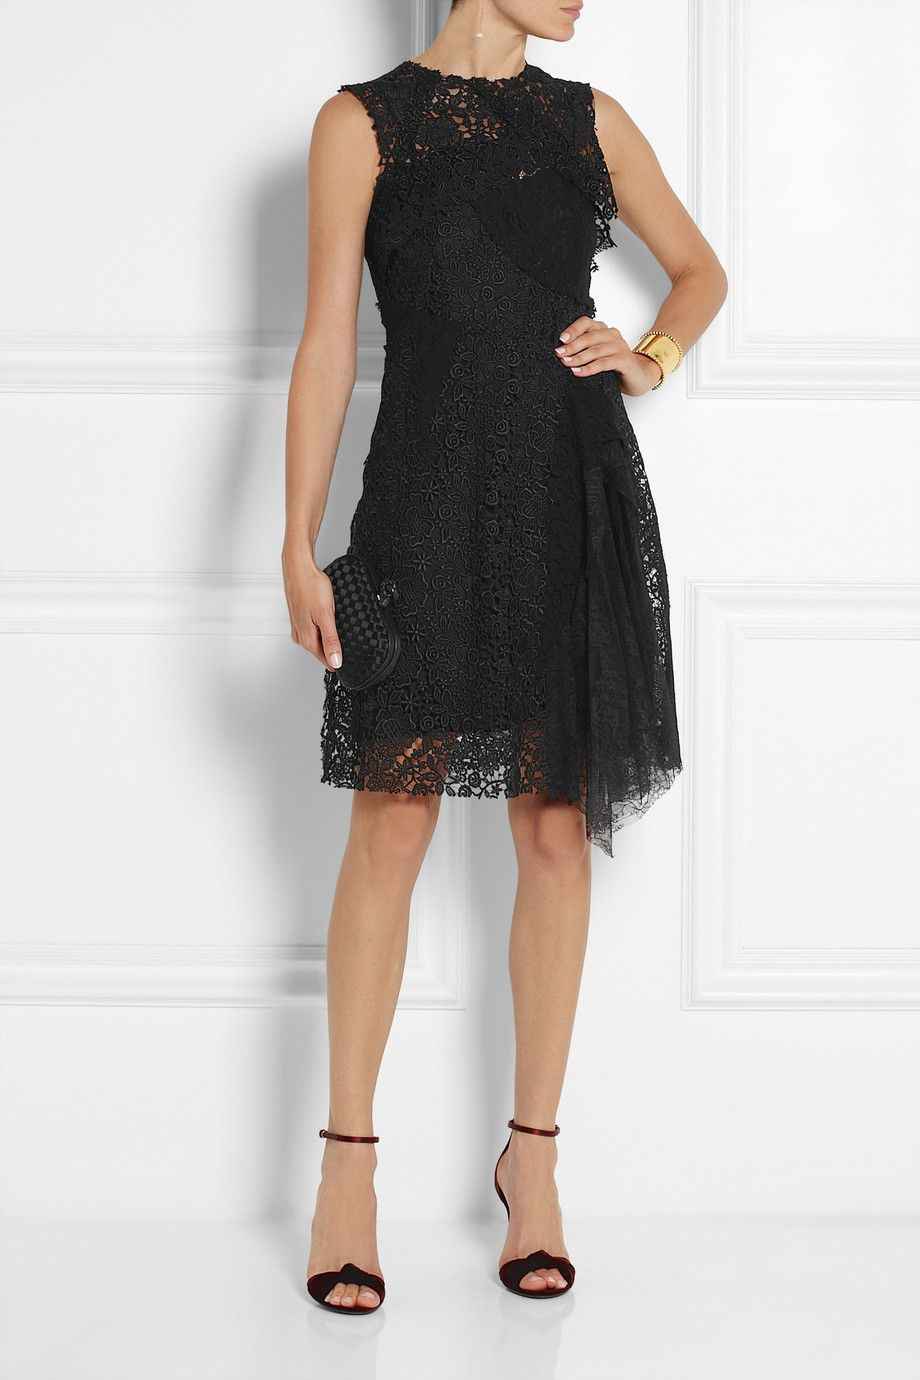 Nina ricci patchwork lace dress fashion pinterest nina ricci